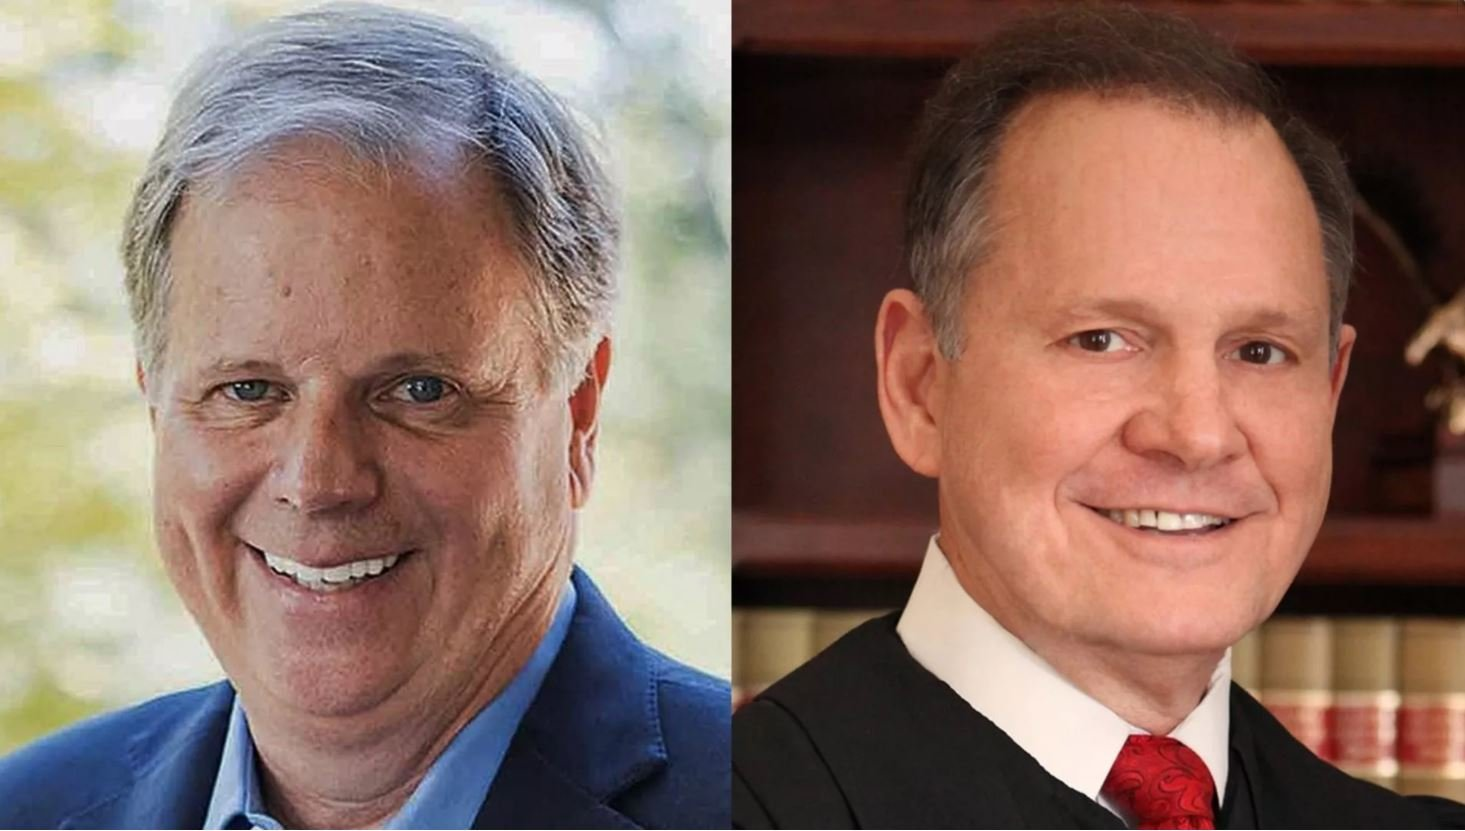 Voters in Alabama are choosing between Senate candidates Roy Moore, a Republican, pictured at right, and Democrat Doug Jones.